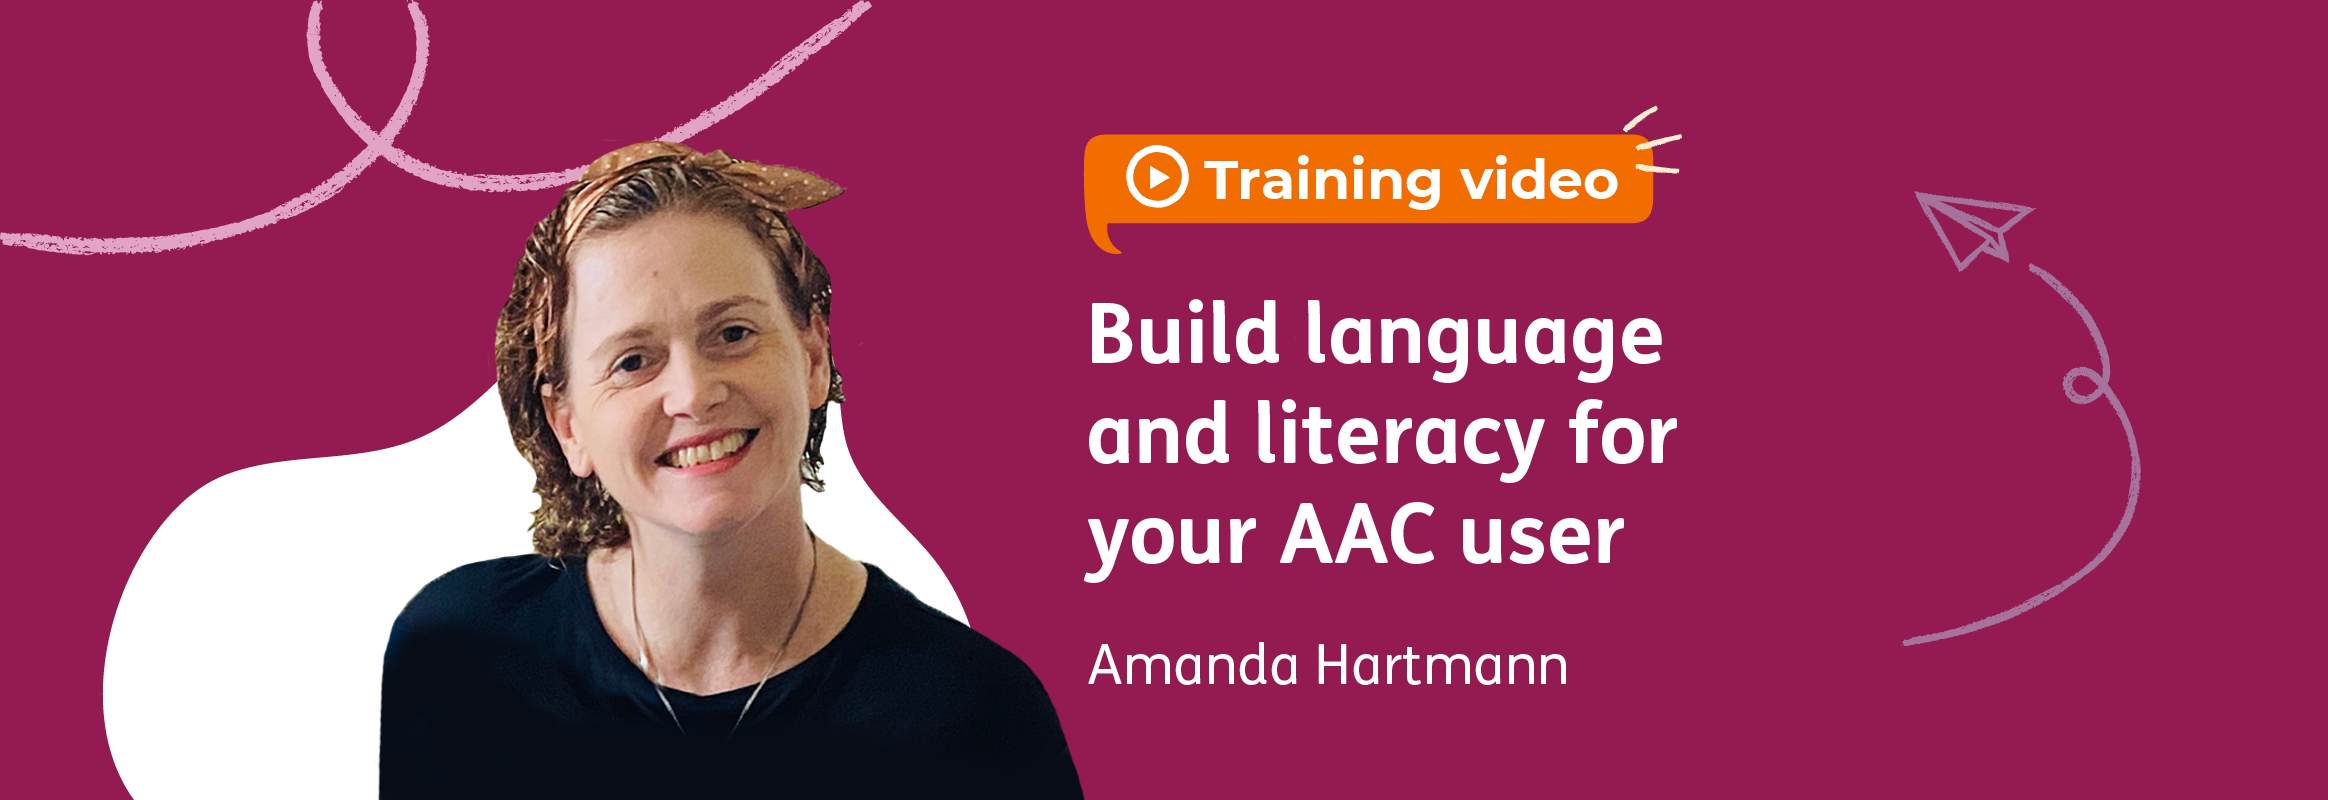 Build language and literacy for your AAC user - Amanda Hartmann